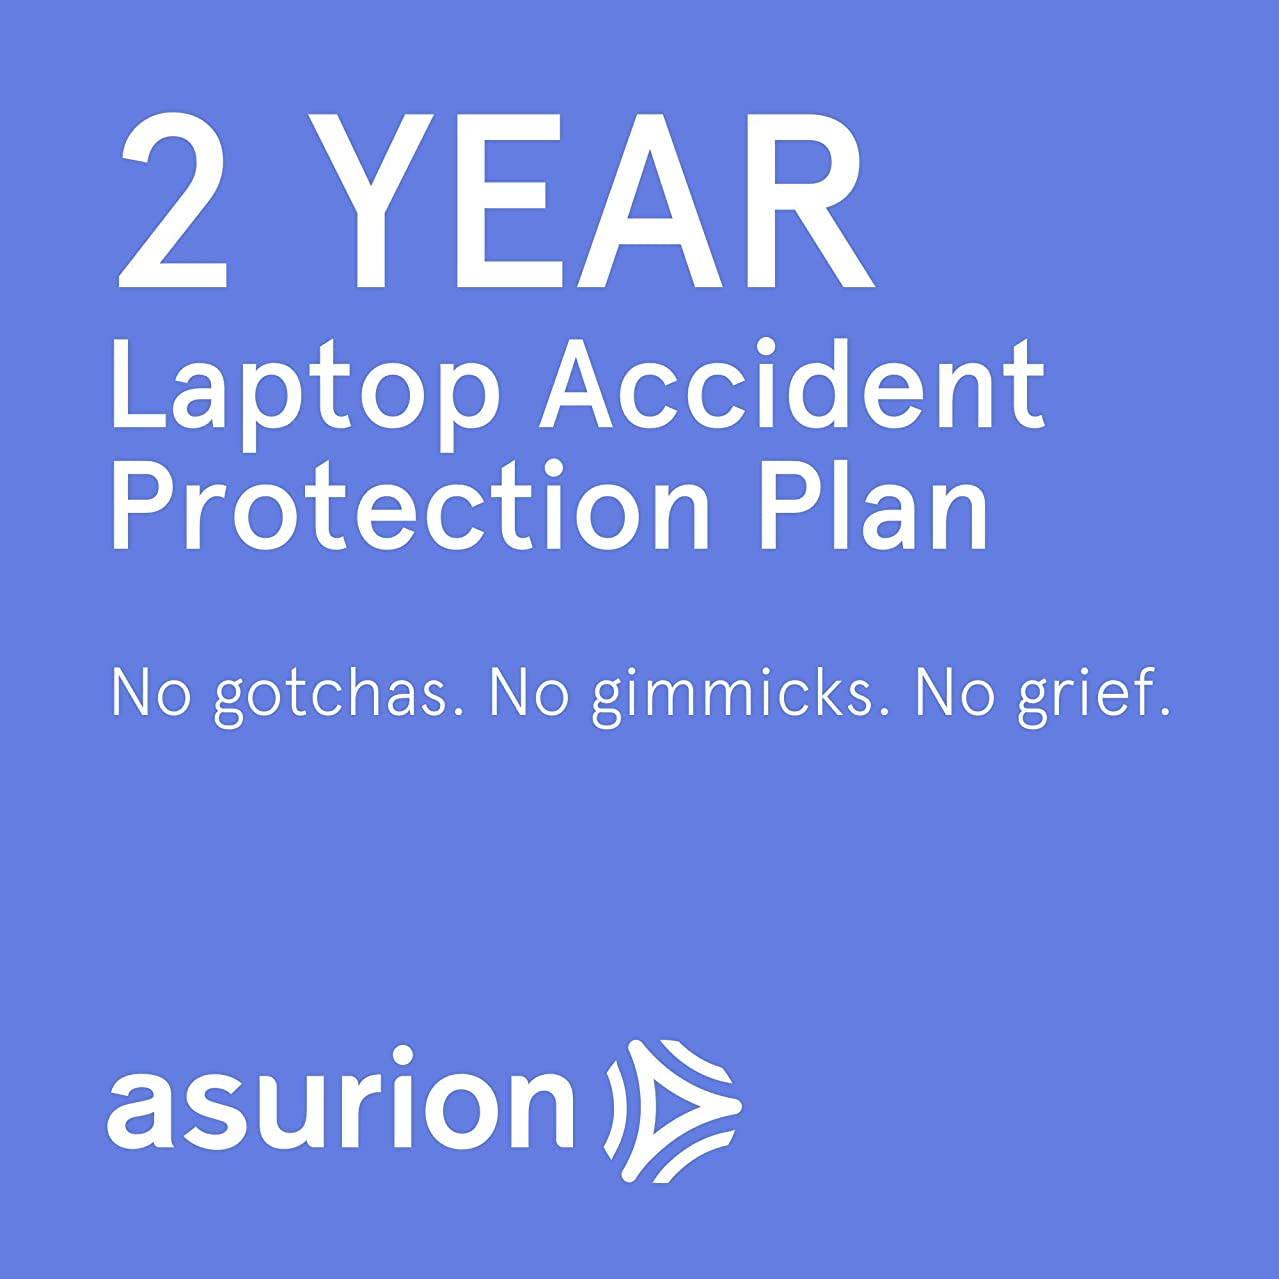 ASURION 2 Year Laptop Accident Protection Plan $100-124.99